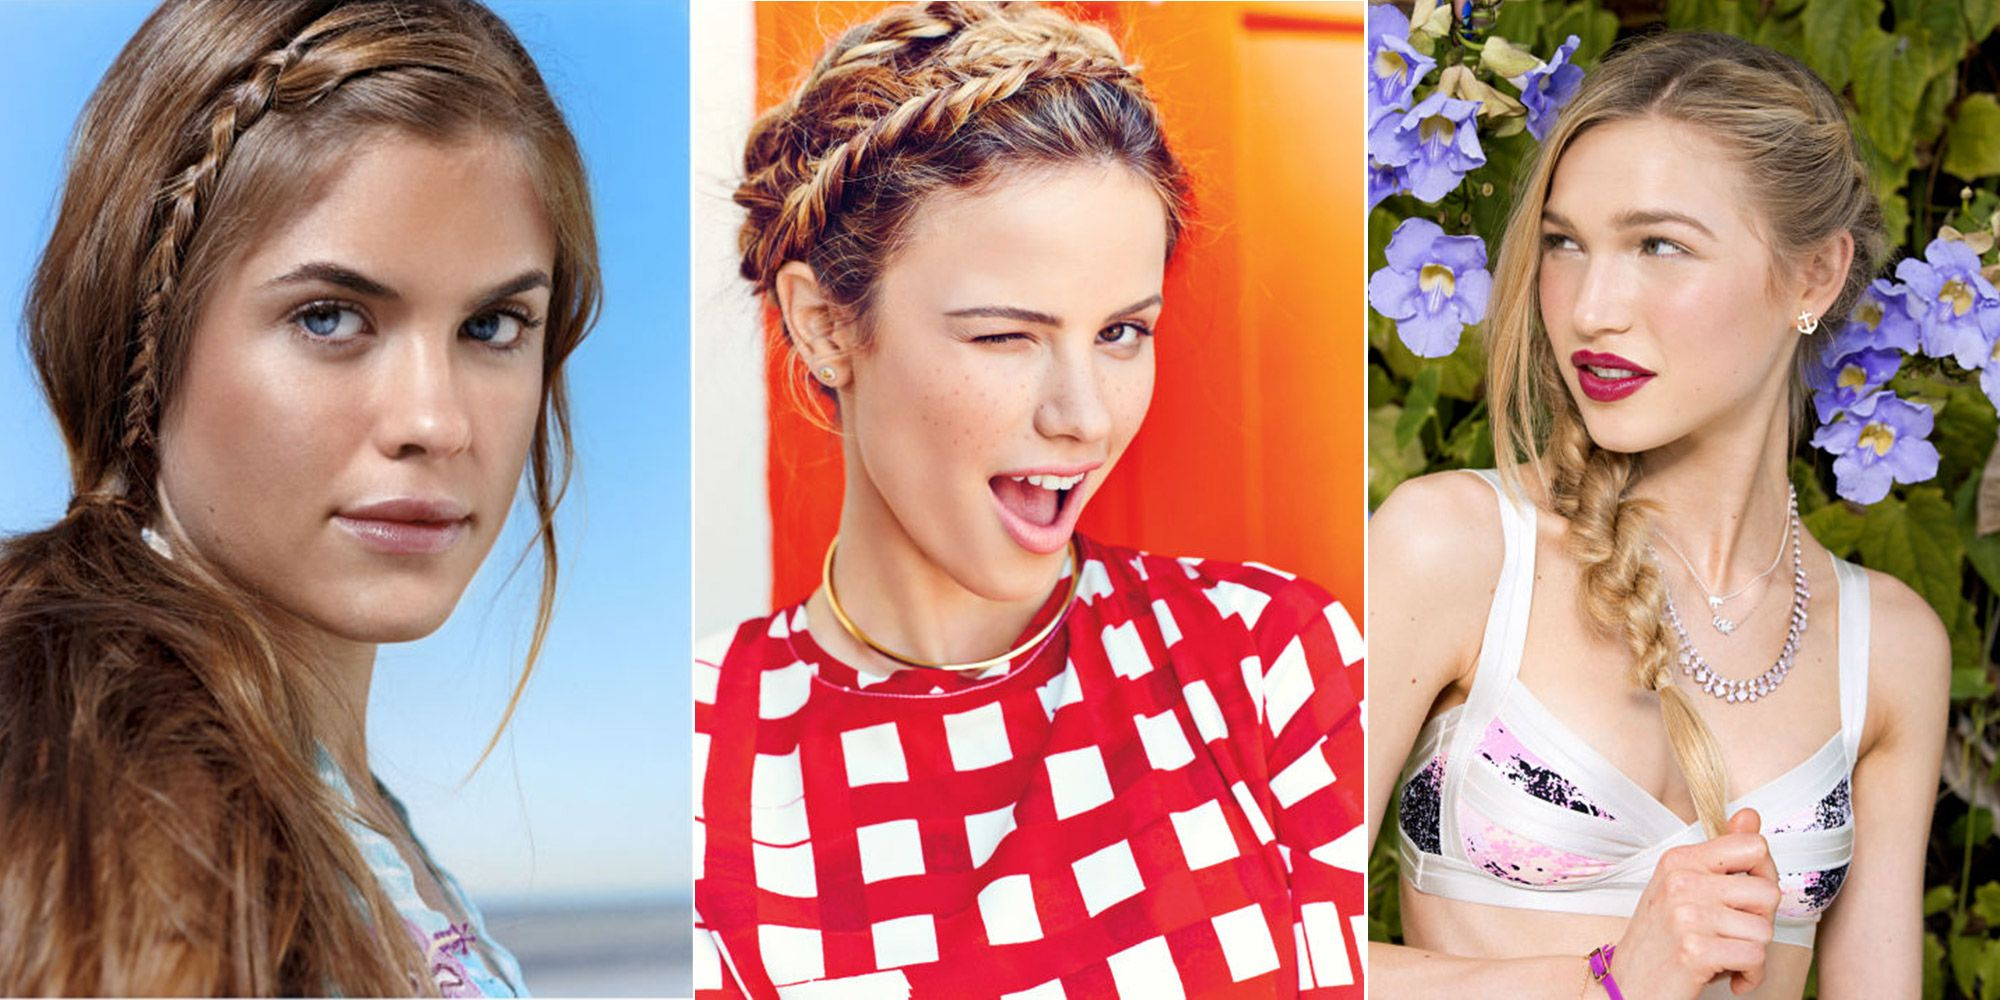 33 braid hairstyle ideas for summer - best braided hairstyles of 2017